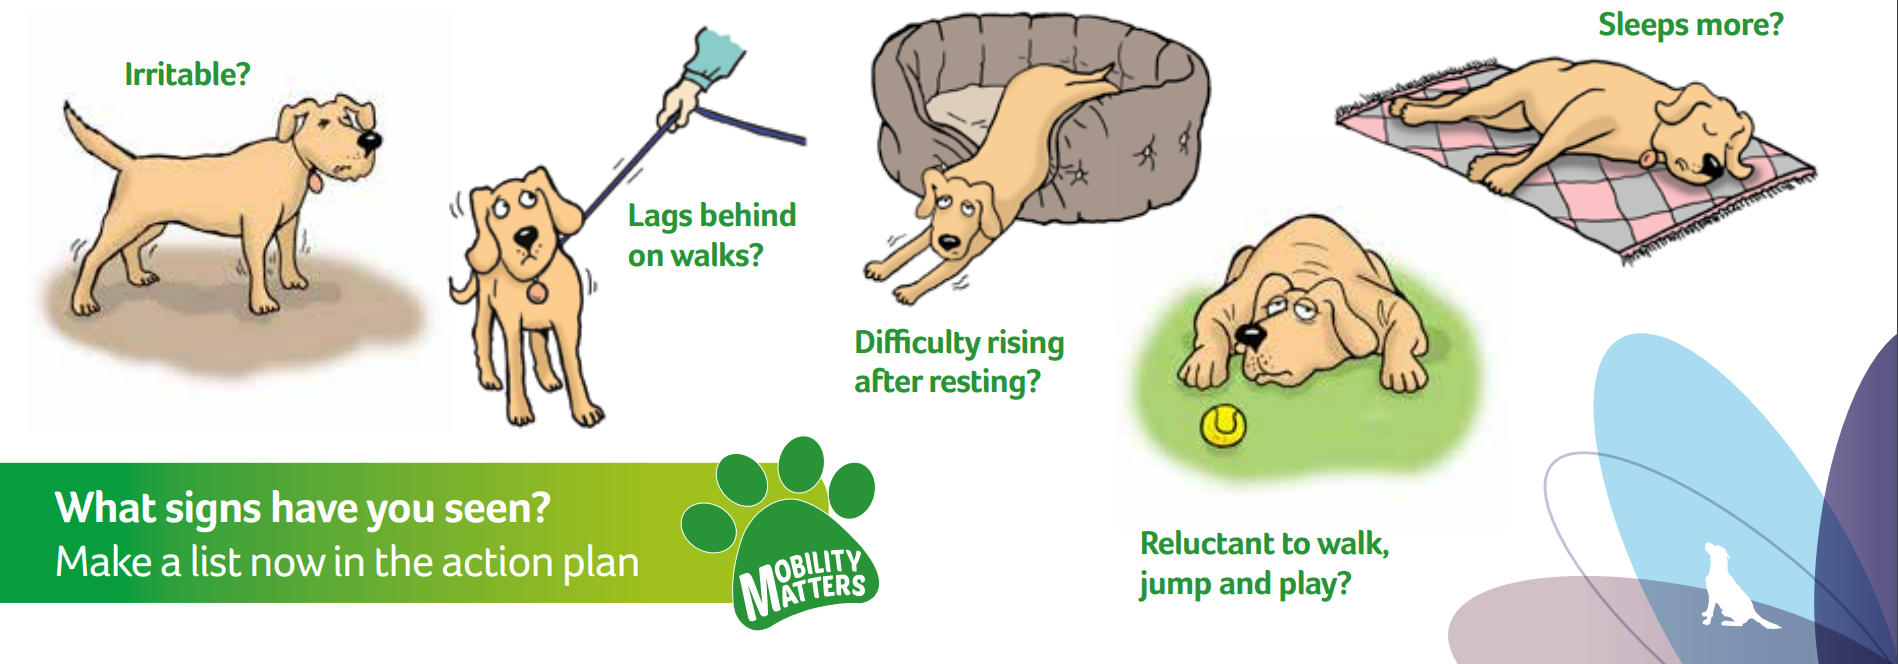 Showing the signs of chronic pain in dogs, which are irritable, reluctant to run, jump or play, sleeping more, difficulty rising after rest, slowing down on walks